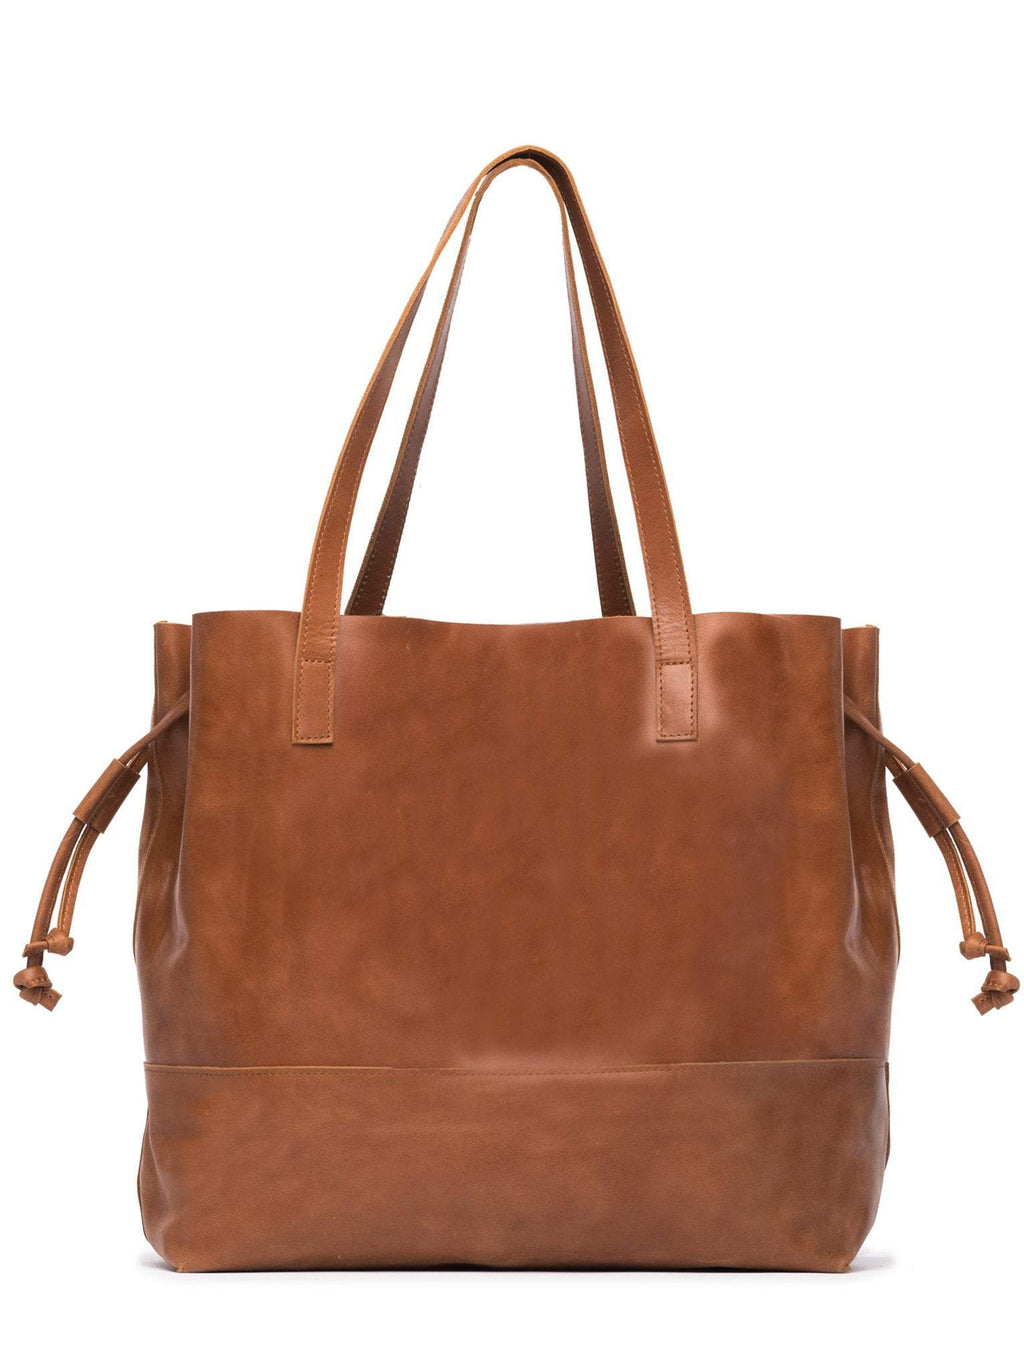 ABLE East West Mamuye Tote